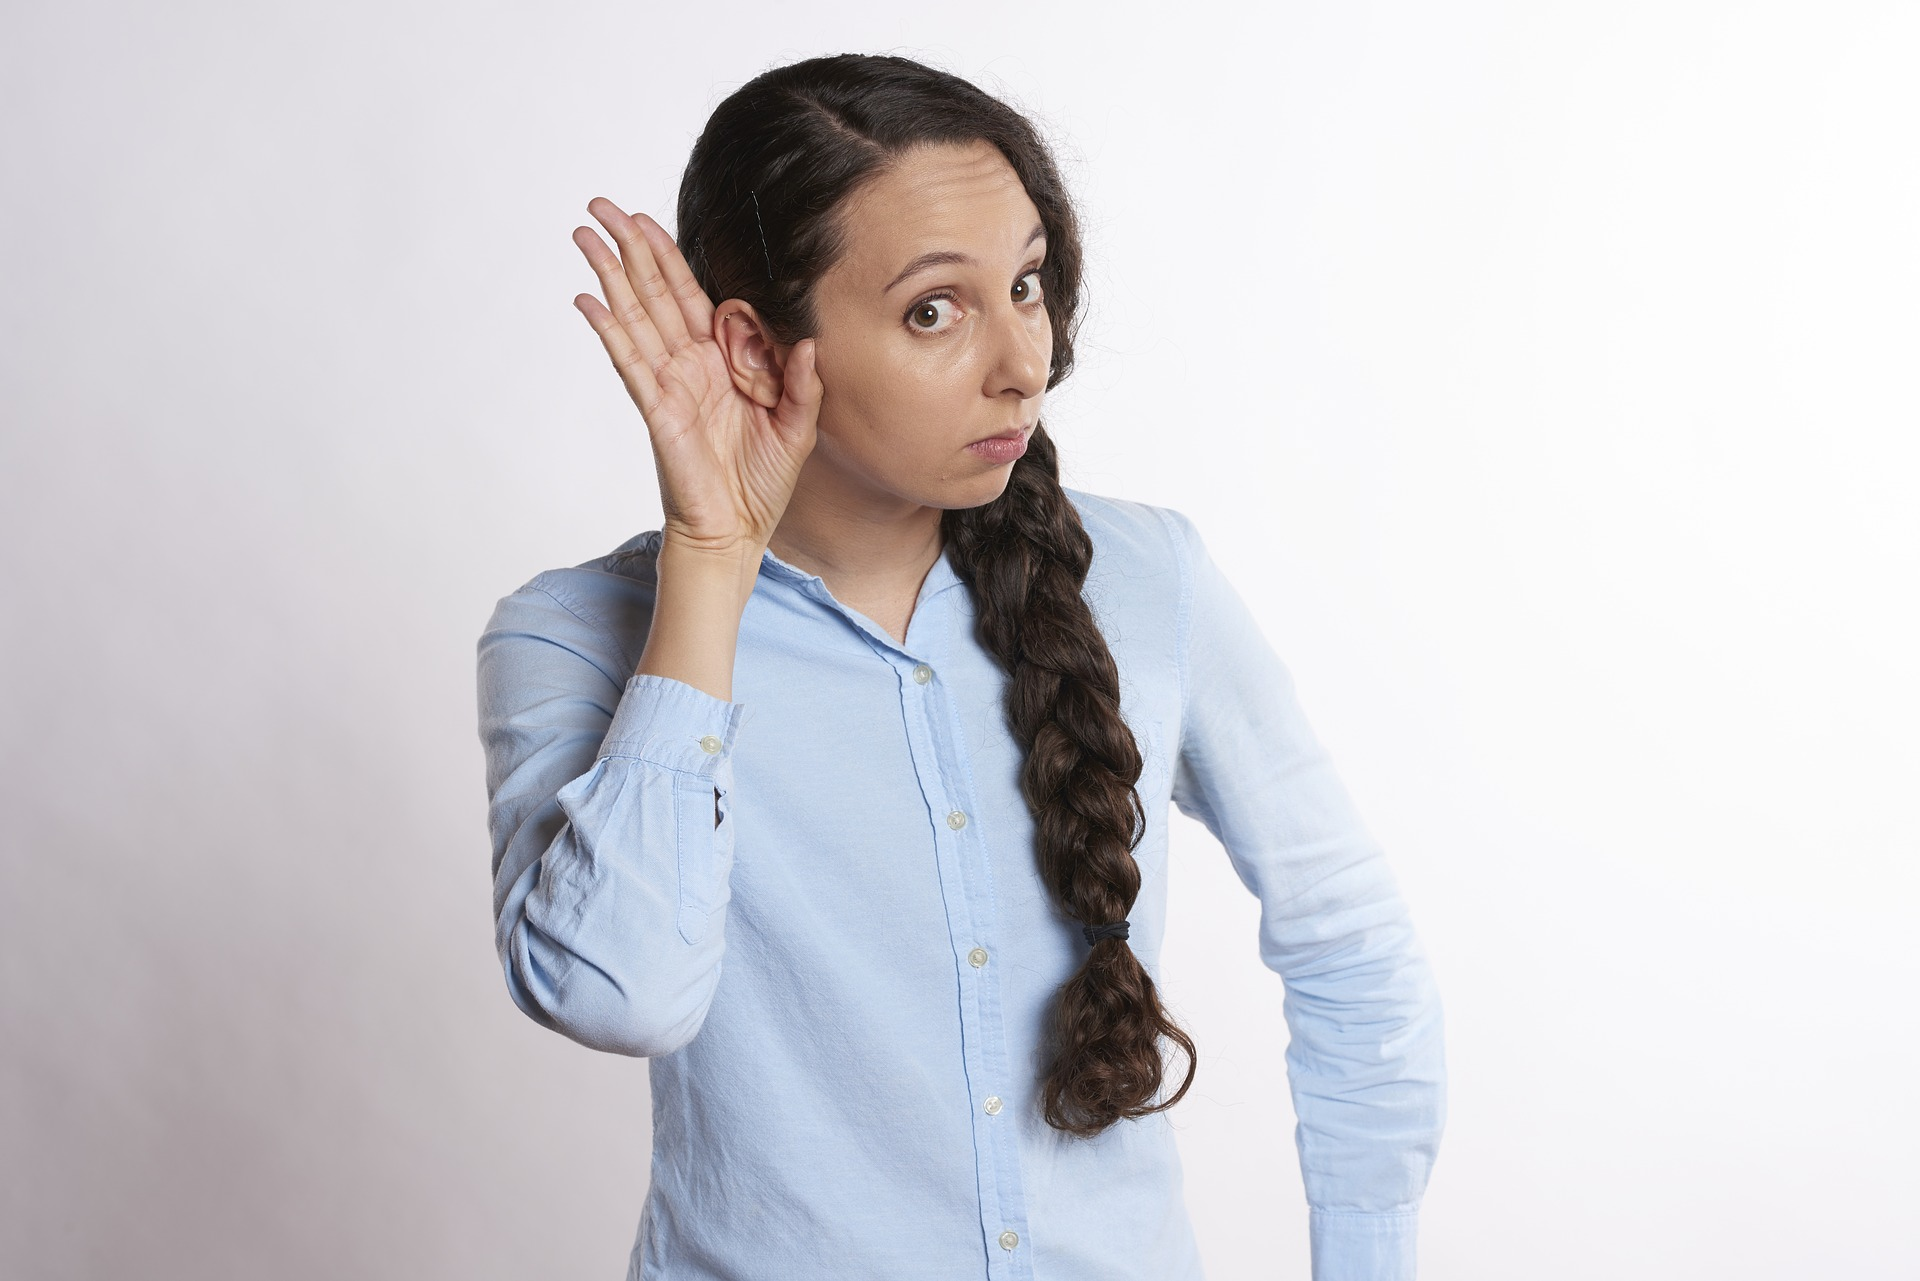 Coping With Hearing Loss: How To Stay Positive